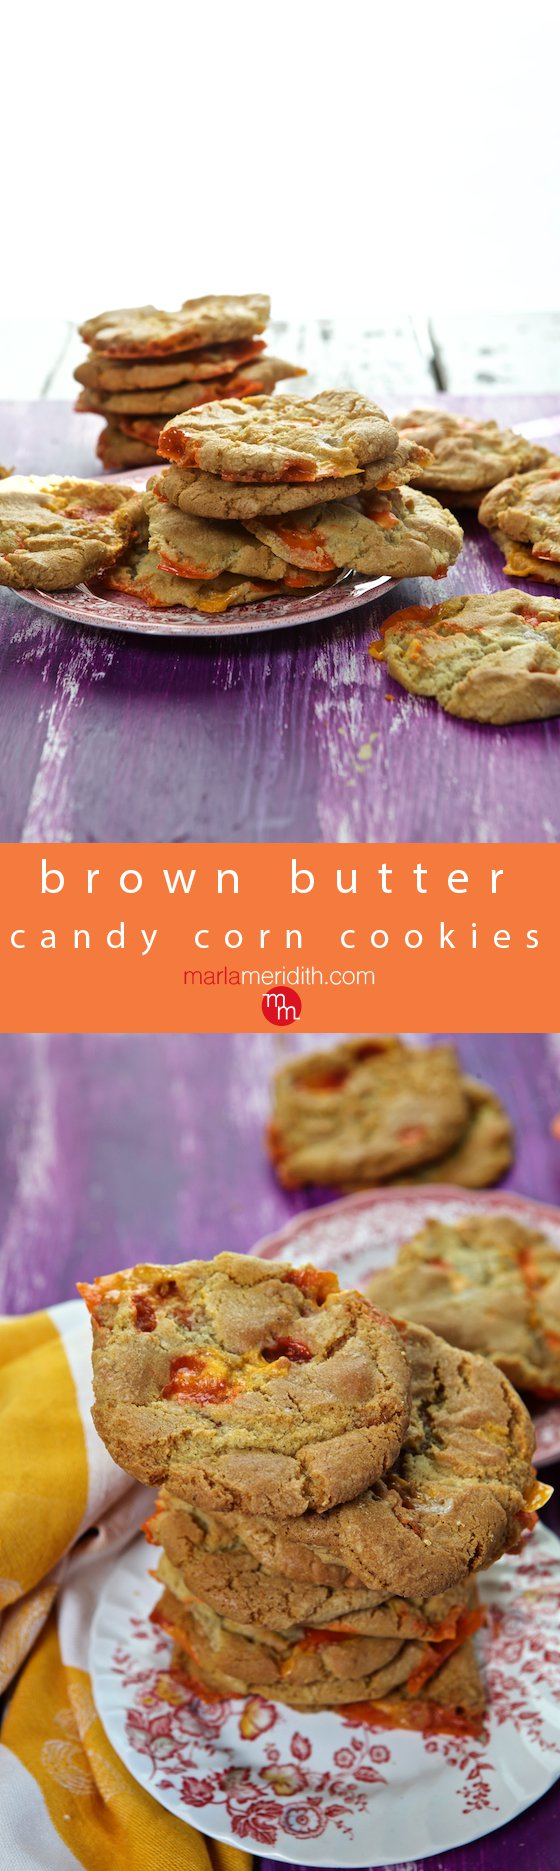 Brown Butter Candy Corn Cookies - Marla Meridith